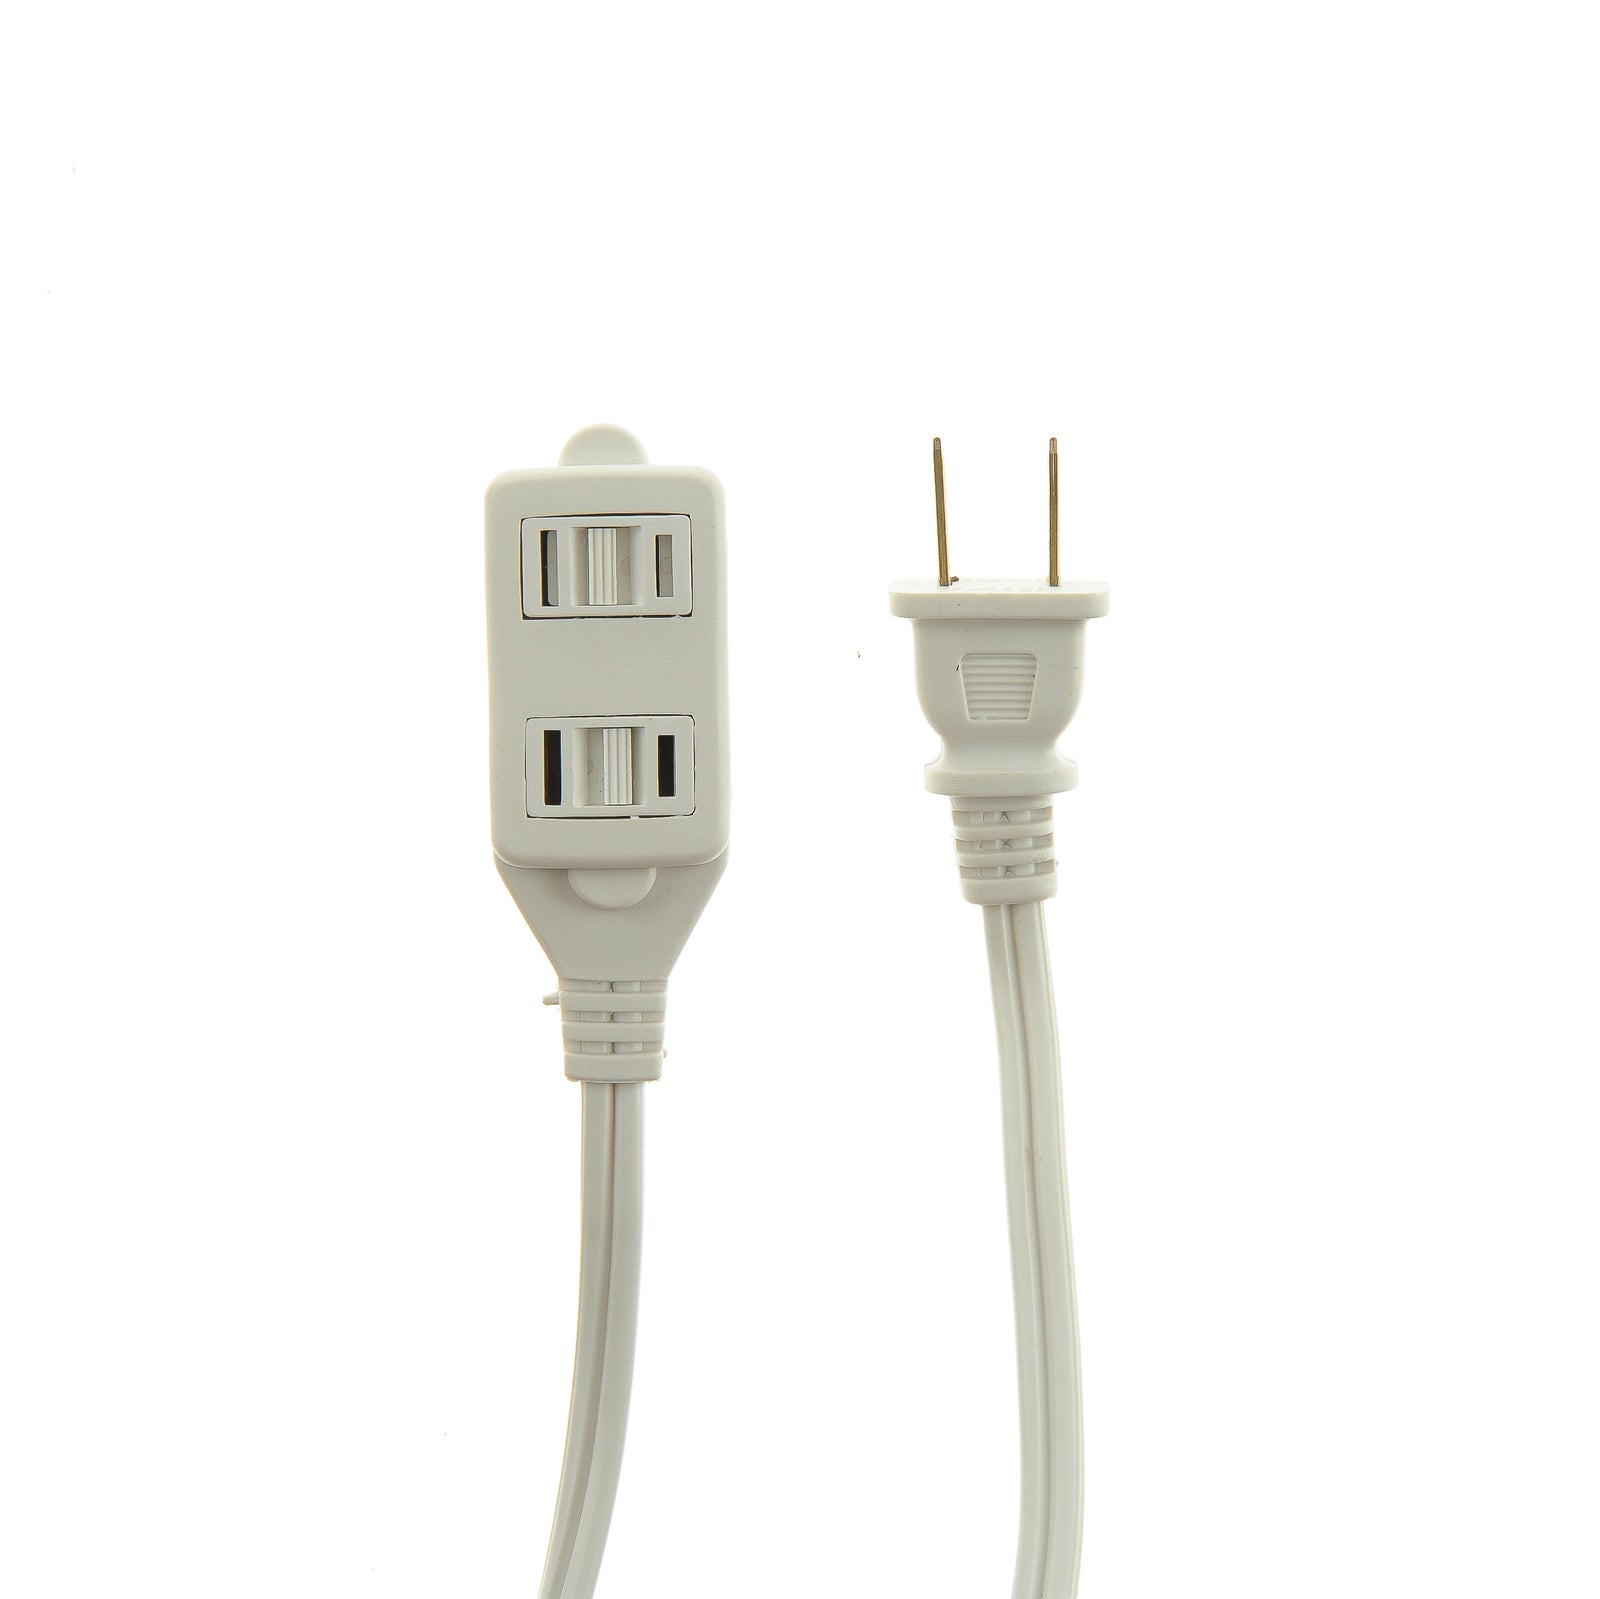 Viasonic Indoor Extension Cord 2 Pack 12ft 16 Gauge Flexible Prong Vs 3 Outlets Outlet Ul